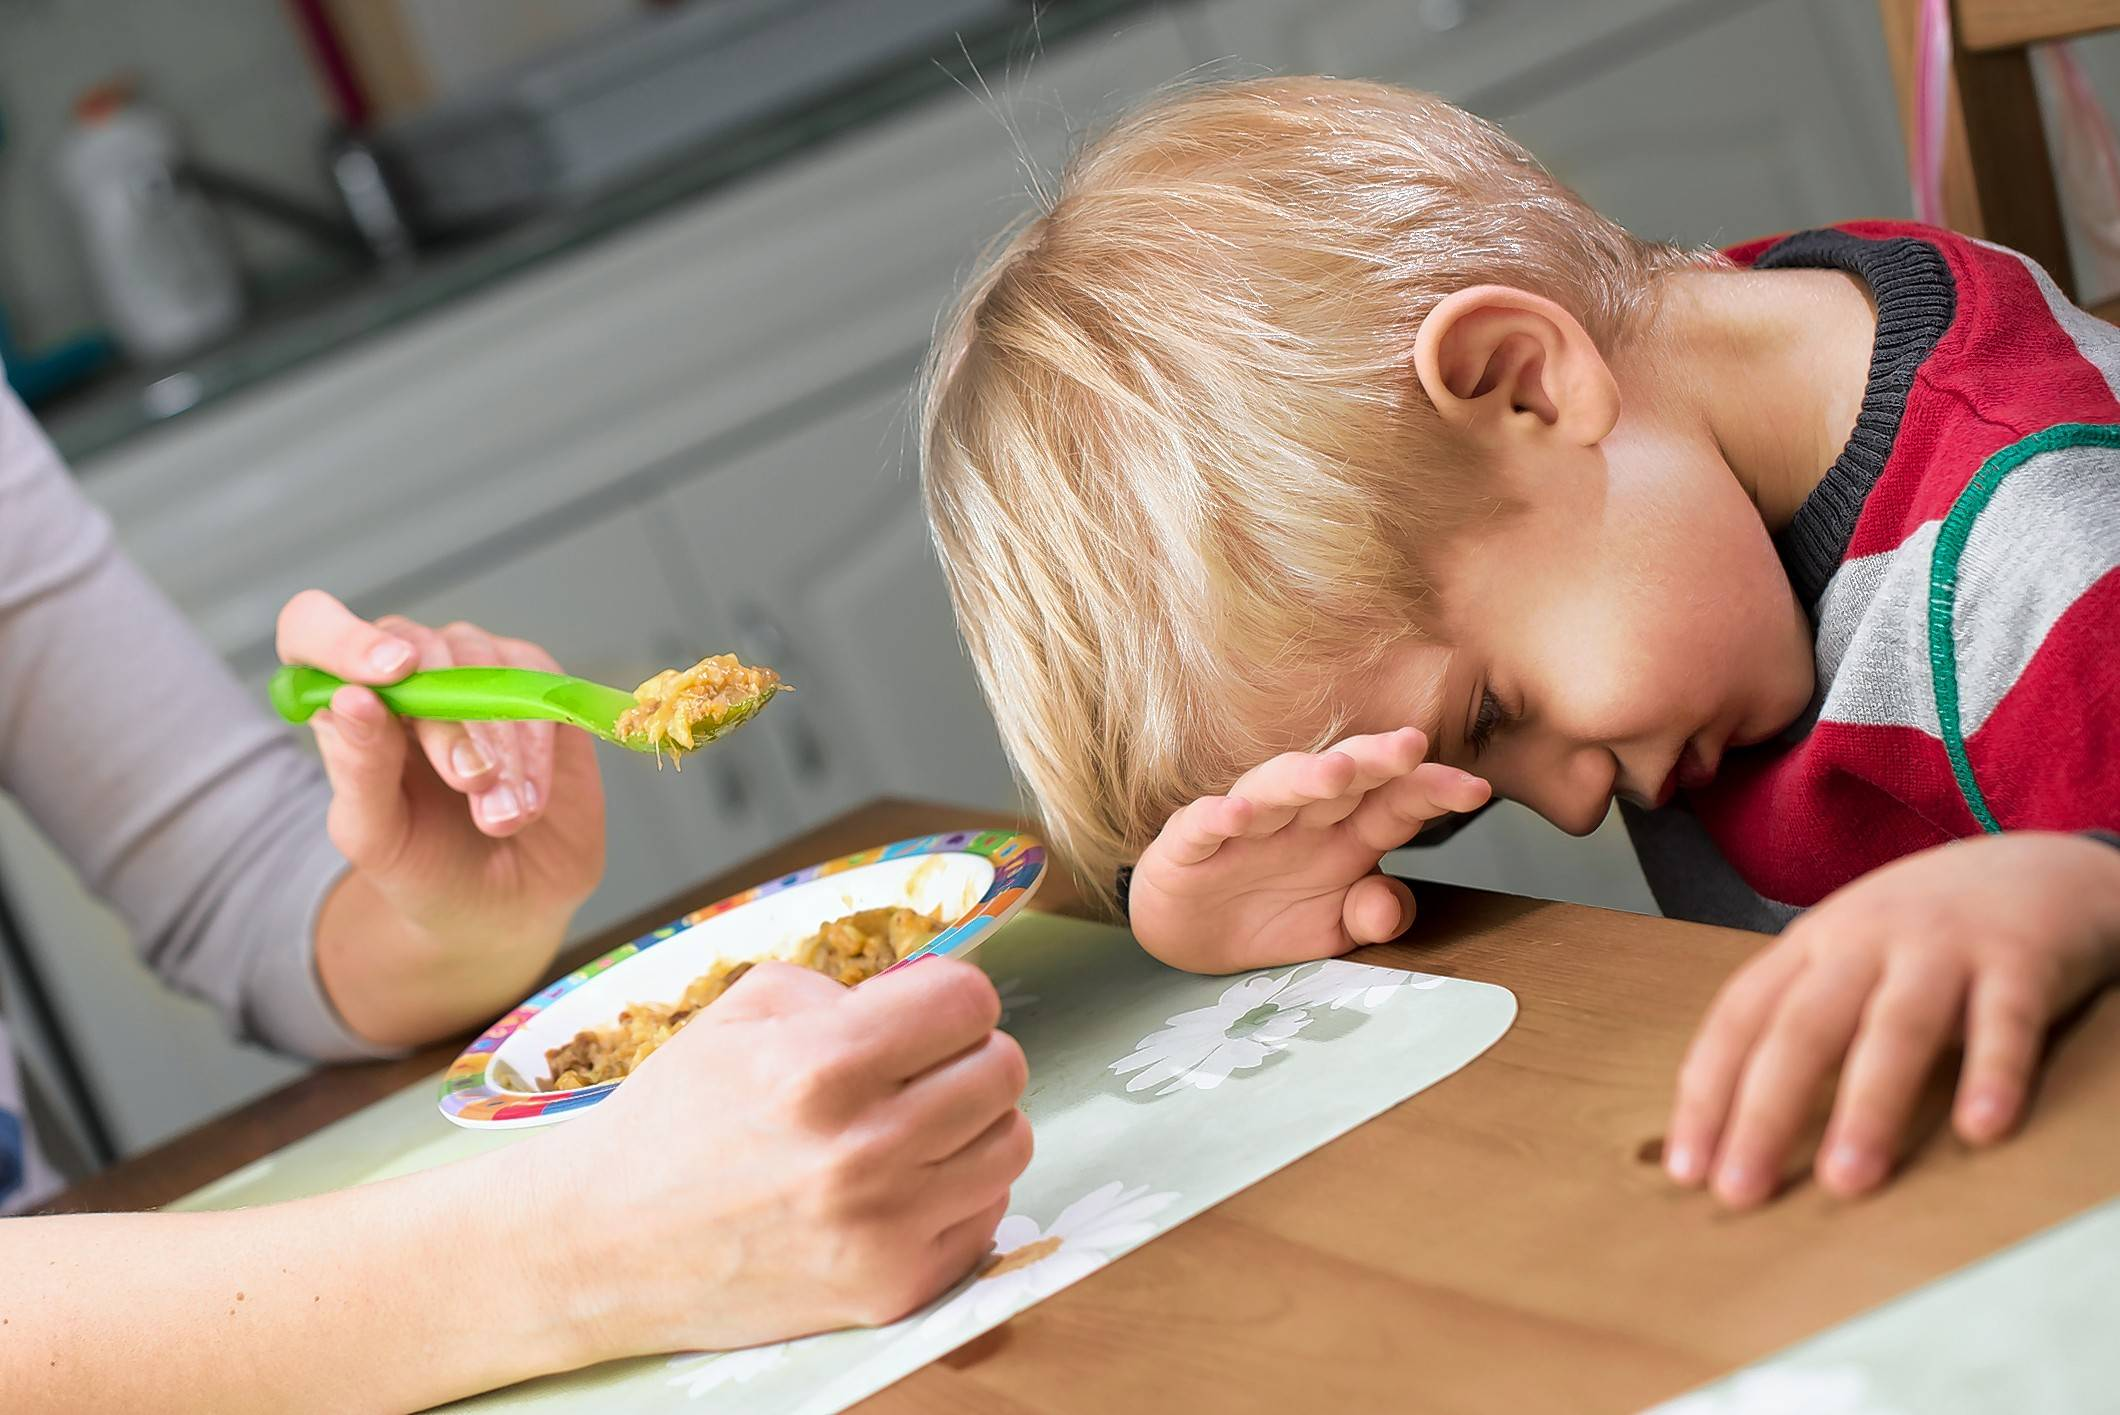 Don't try to force your child to eat, advises Dr. Matthew Smiley.